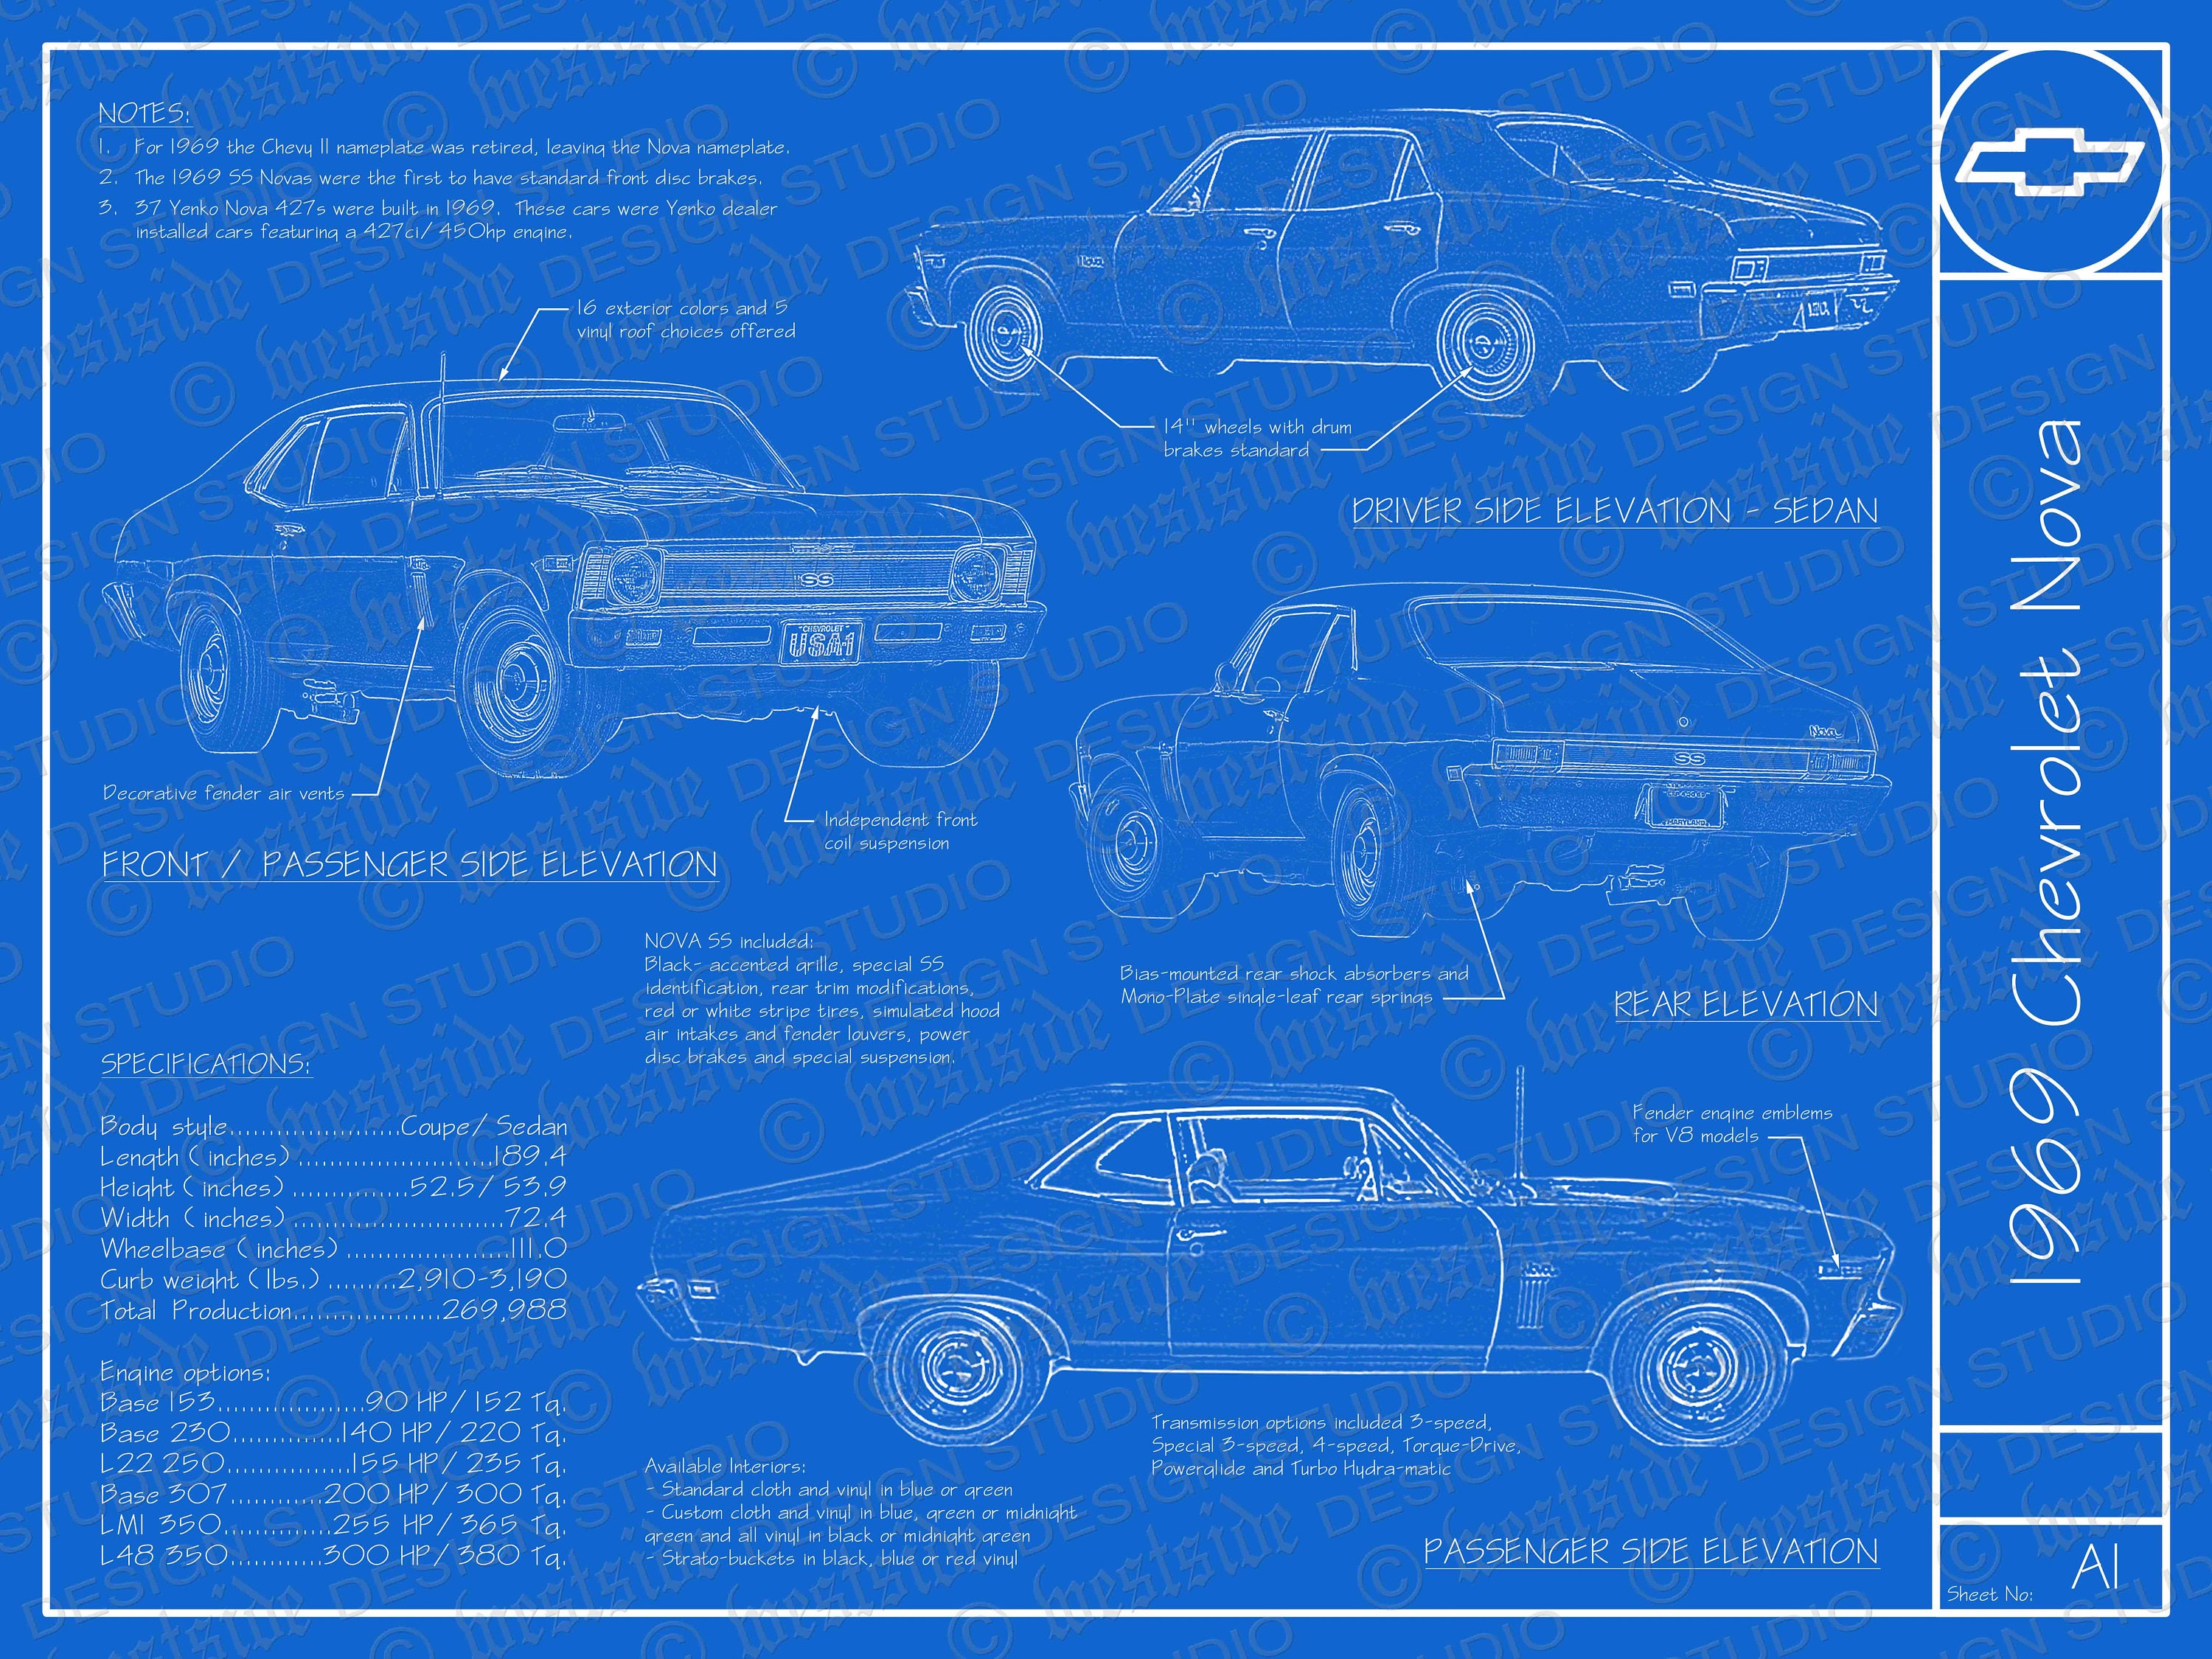 1969 chevrolet nova blueprint poster 18x24 jpeg zoom malvernweather Choice Image